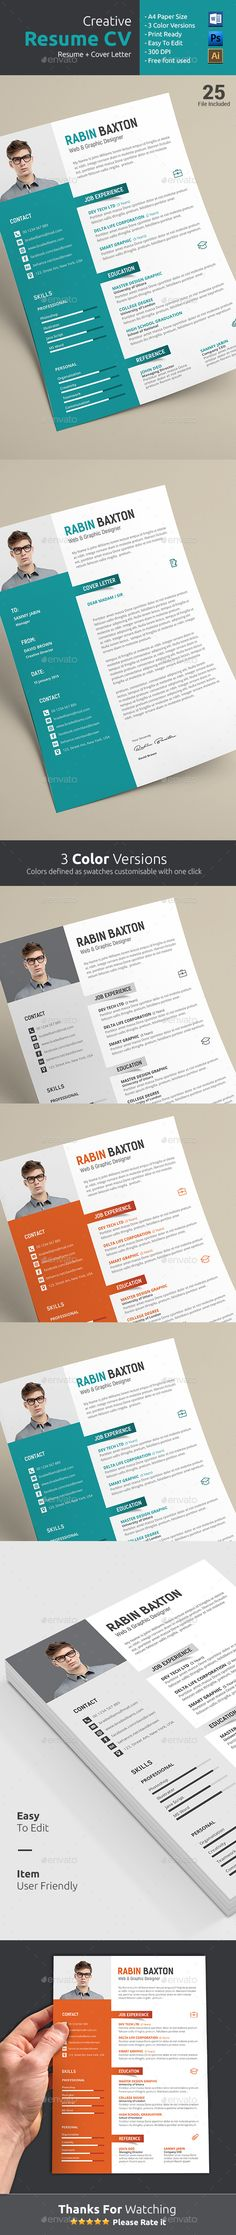 Resume Template PSD, AI #design Download: Http://graphicriver.net/item/ Resume/13152455?refu003dksioks